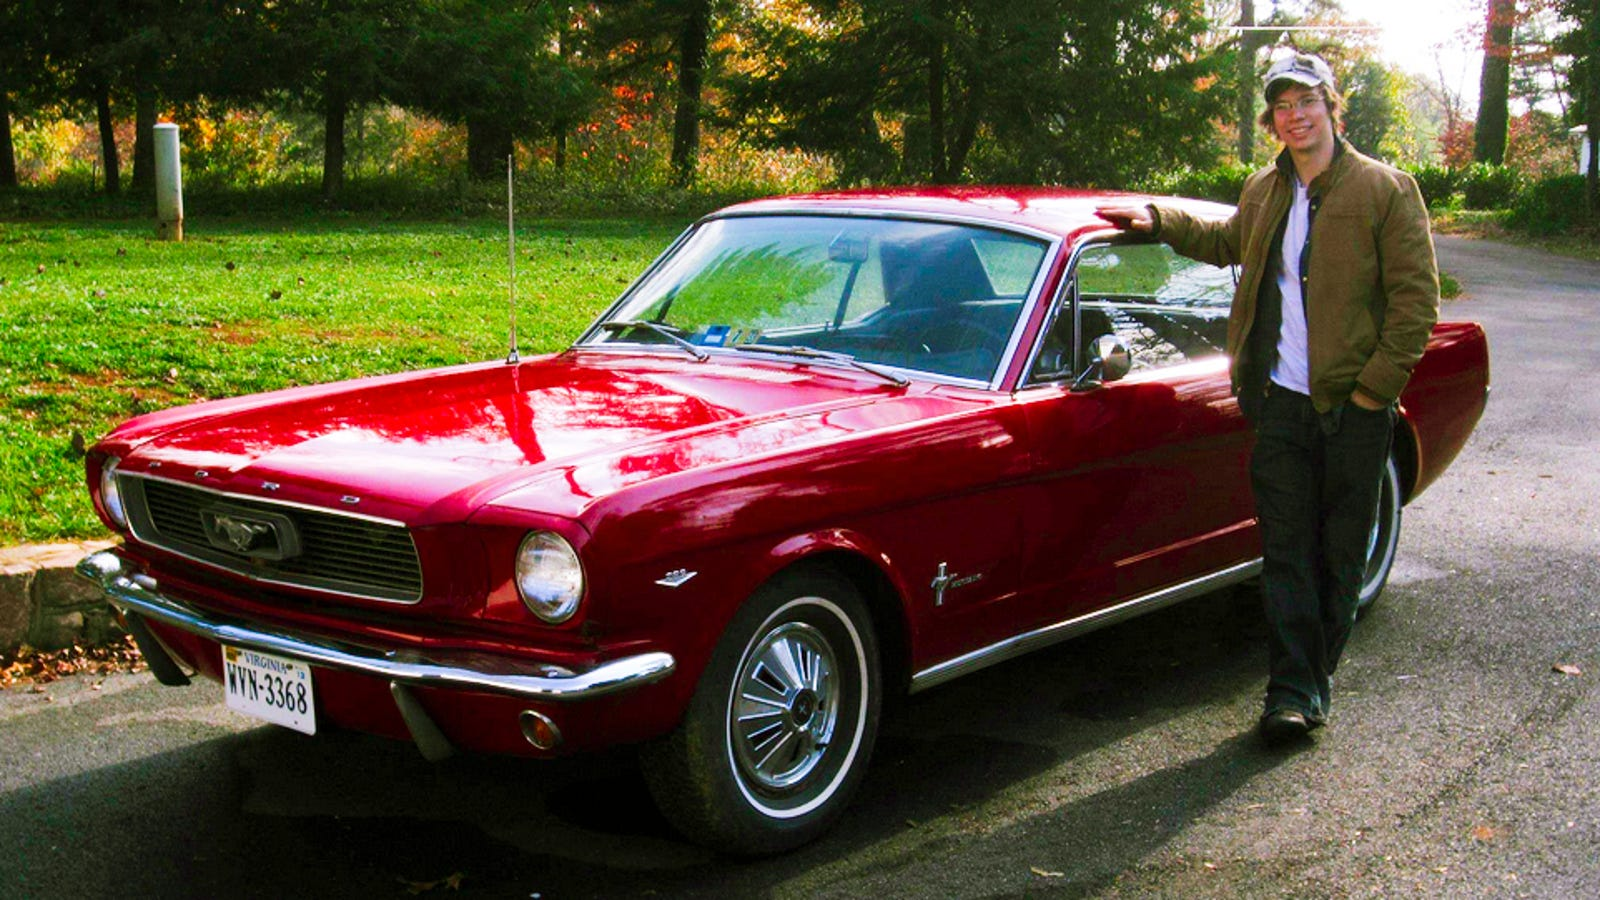 Why I Refuse To Fix Up My Secret 1966 Ford Mustang Events Car S Videos